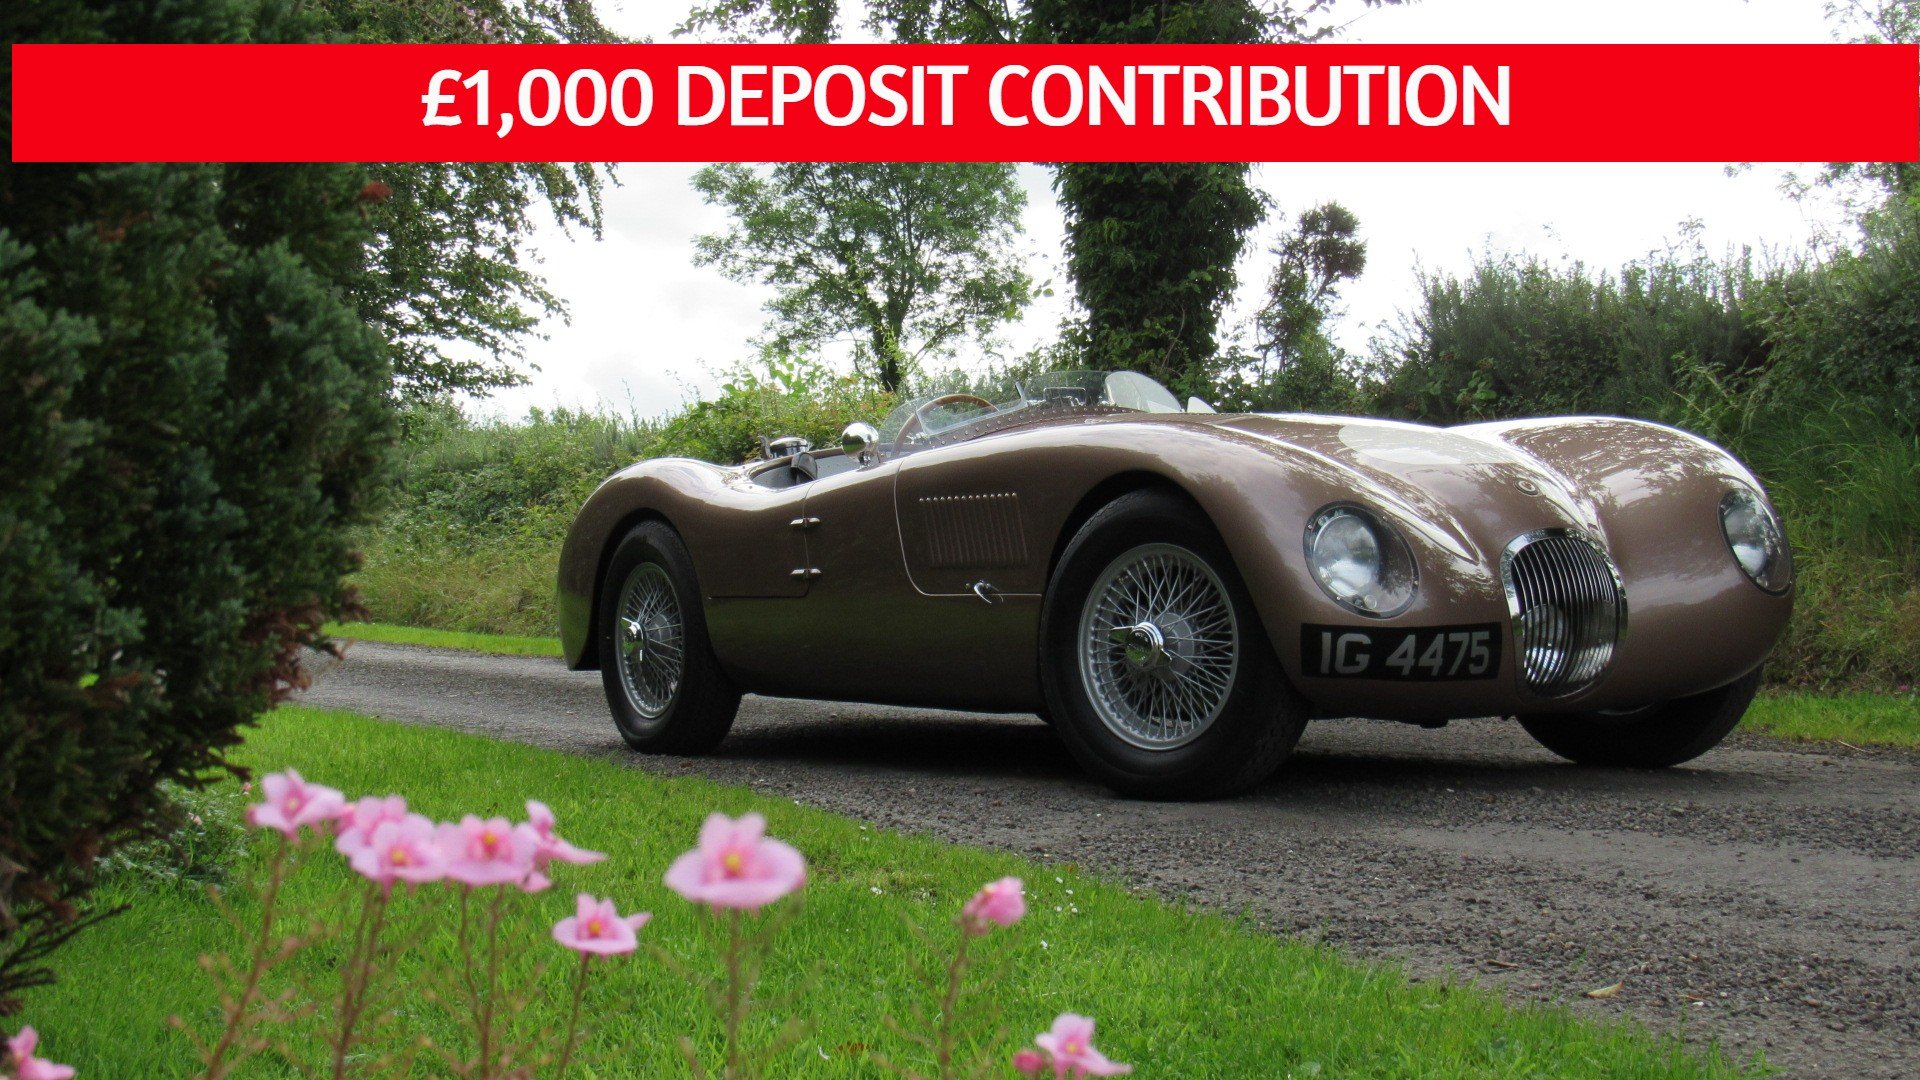 2017 Jaguar C-Type recreation ** £1,000 DEPOSIT CONTRIBUTION ** For Sale (picture 1 of 6)